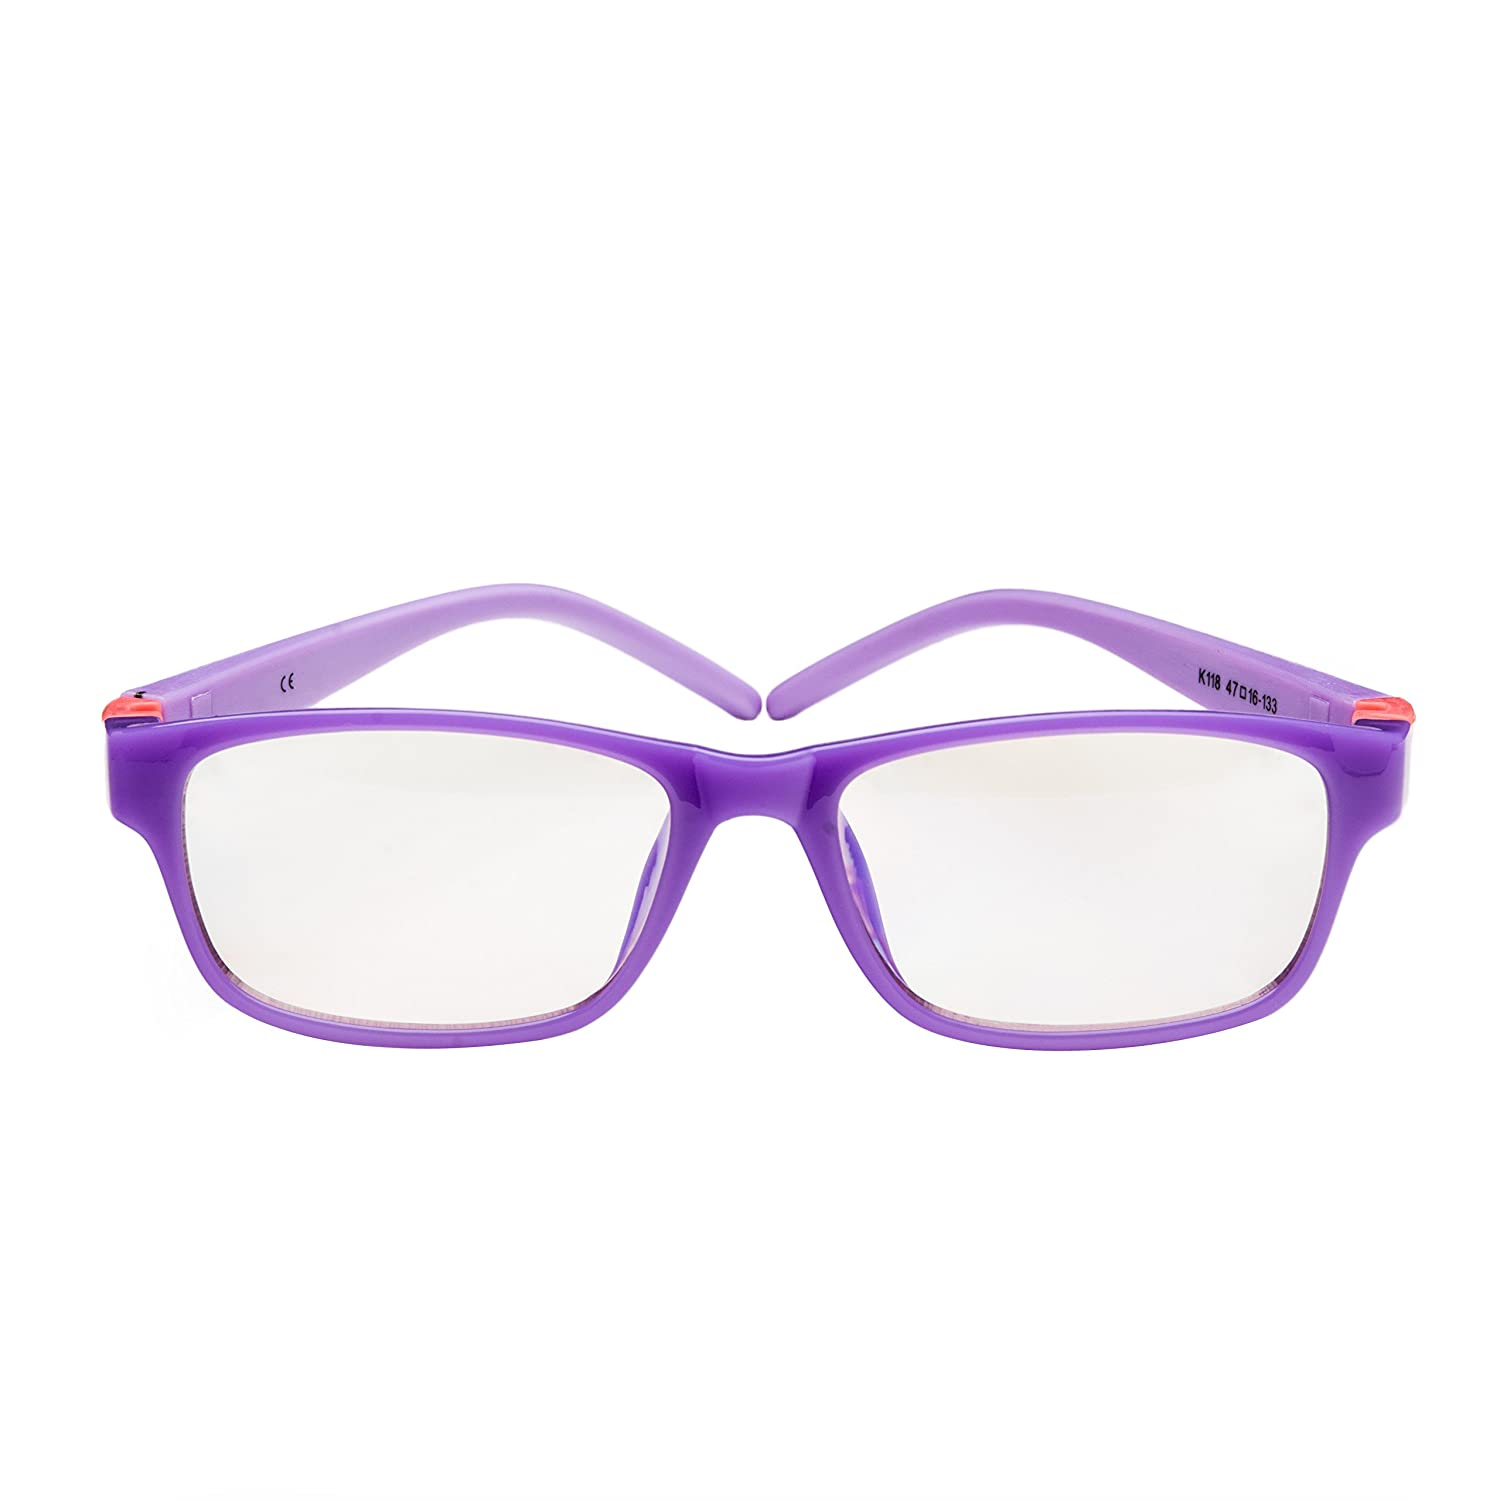 SPEKTRUM KIDS COMPUTER GLASSES: Anti Blue Light Glasses for Children 4+. Anti-reflective, UV and Computer/TV Electromagnetic Radiation Protection, Anti Fog, Scratch Resistant (Moviestar) Spektrum Glasses 4332649638